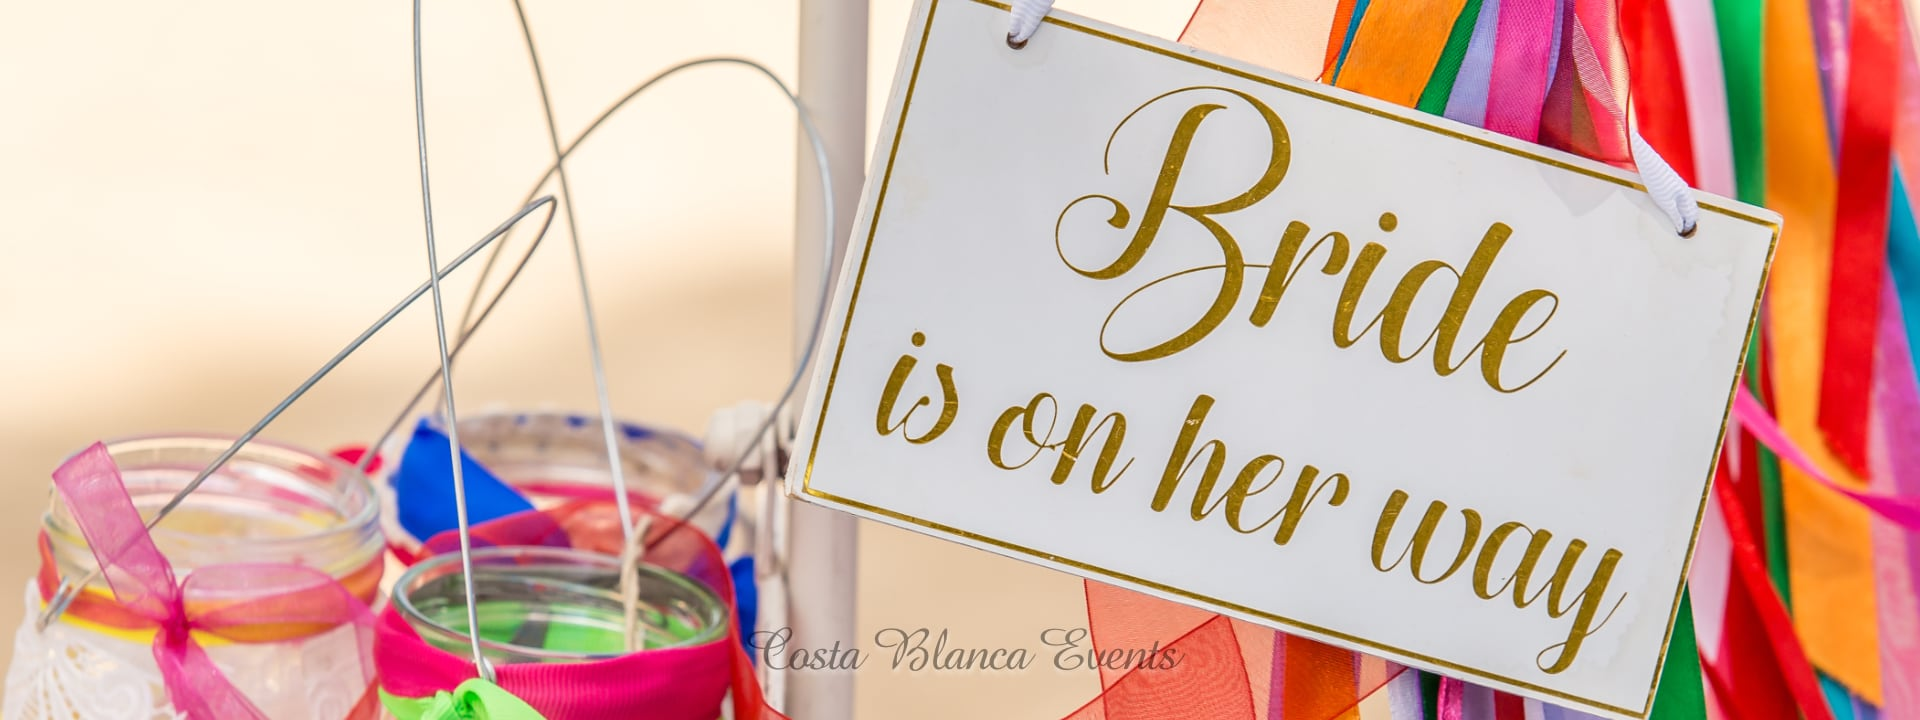 Photo of a sign with bride is on her way as part of the decoration for her marriage abroad